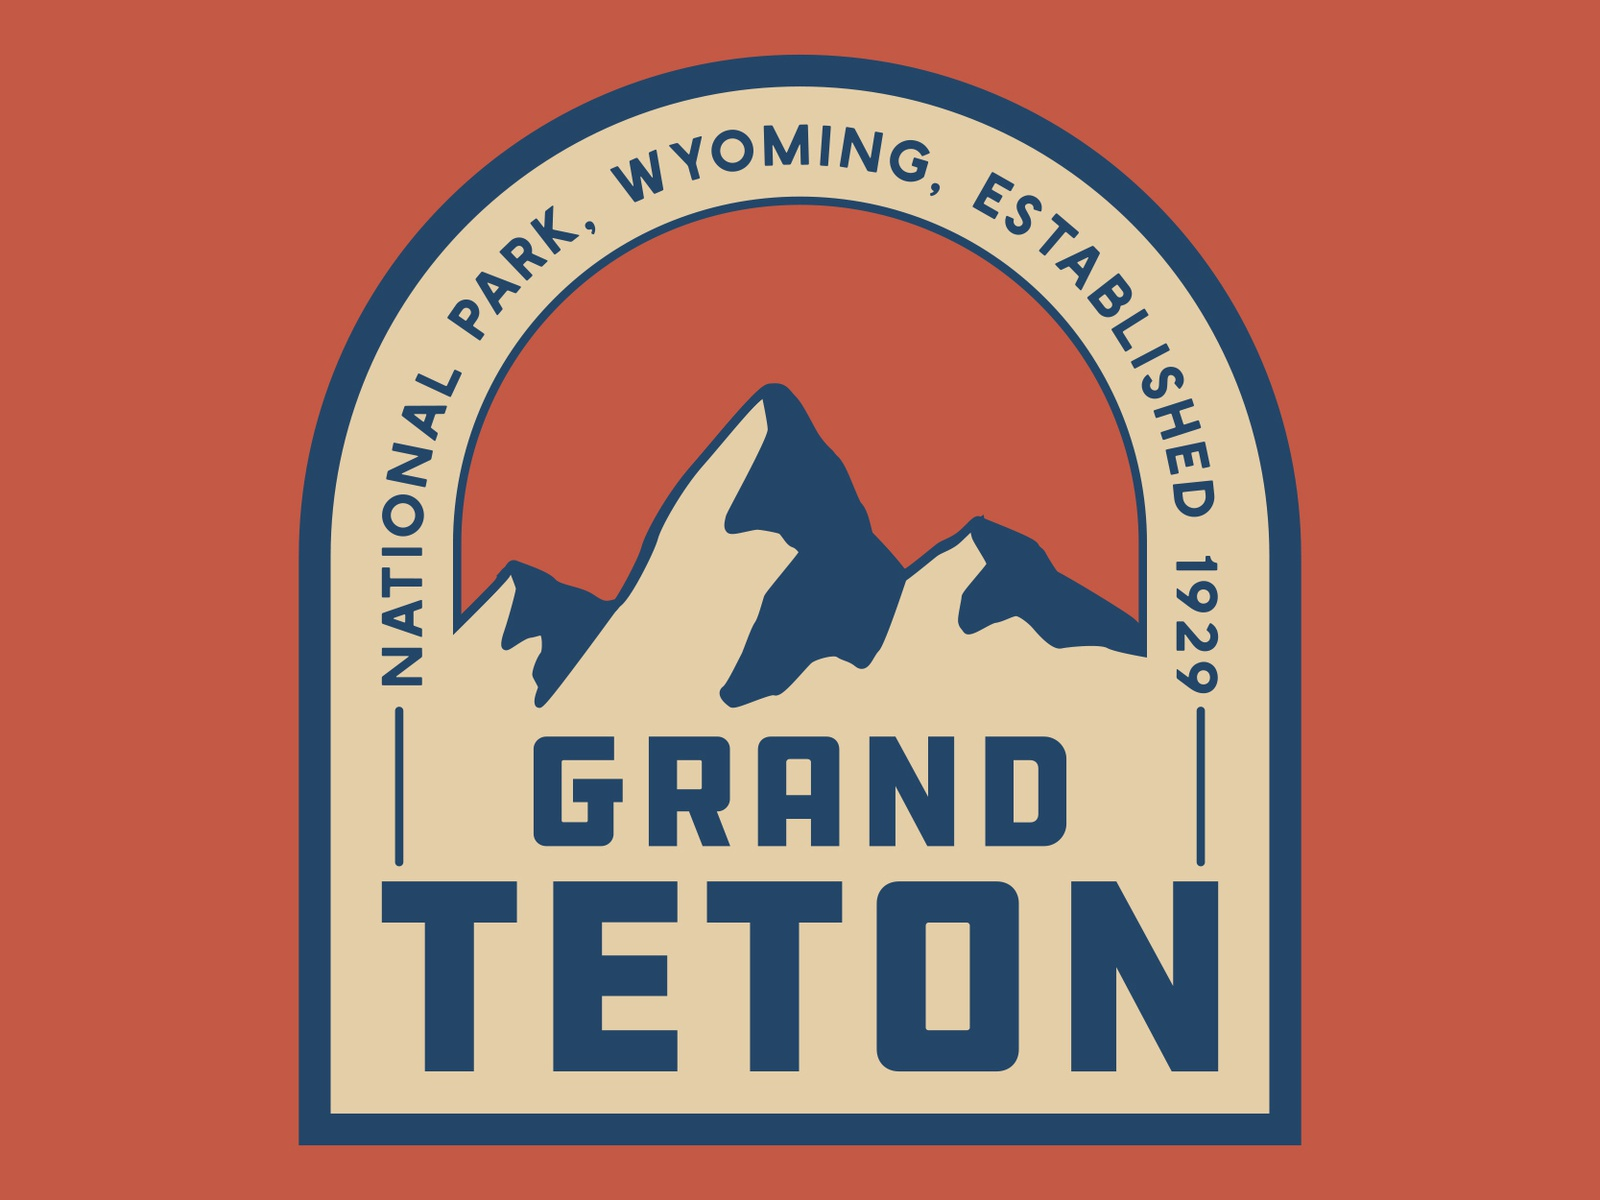 Grand Teton Patch grand teton tetons mountains design outdoors wilderness national park logo vintage retro patch badge